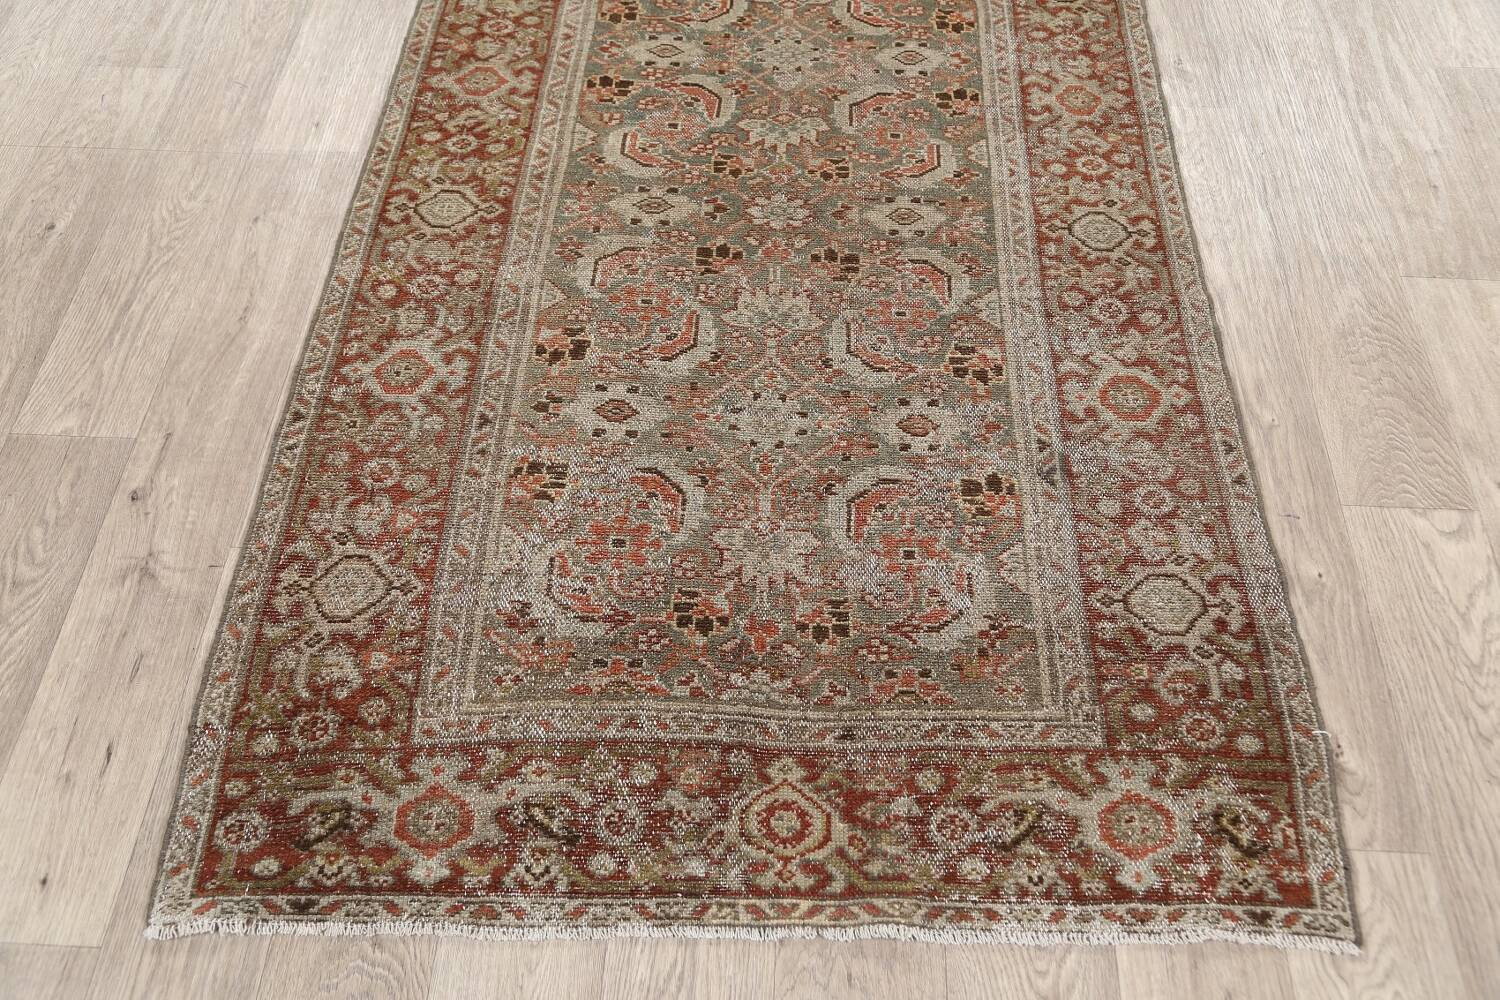 Pre-1900 Antique Malayer Persian Runner Rug 2x16 image 8